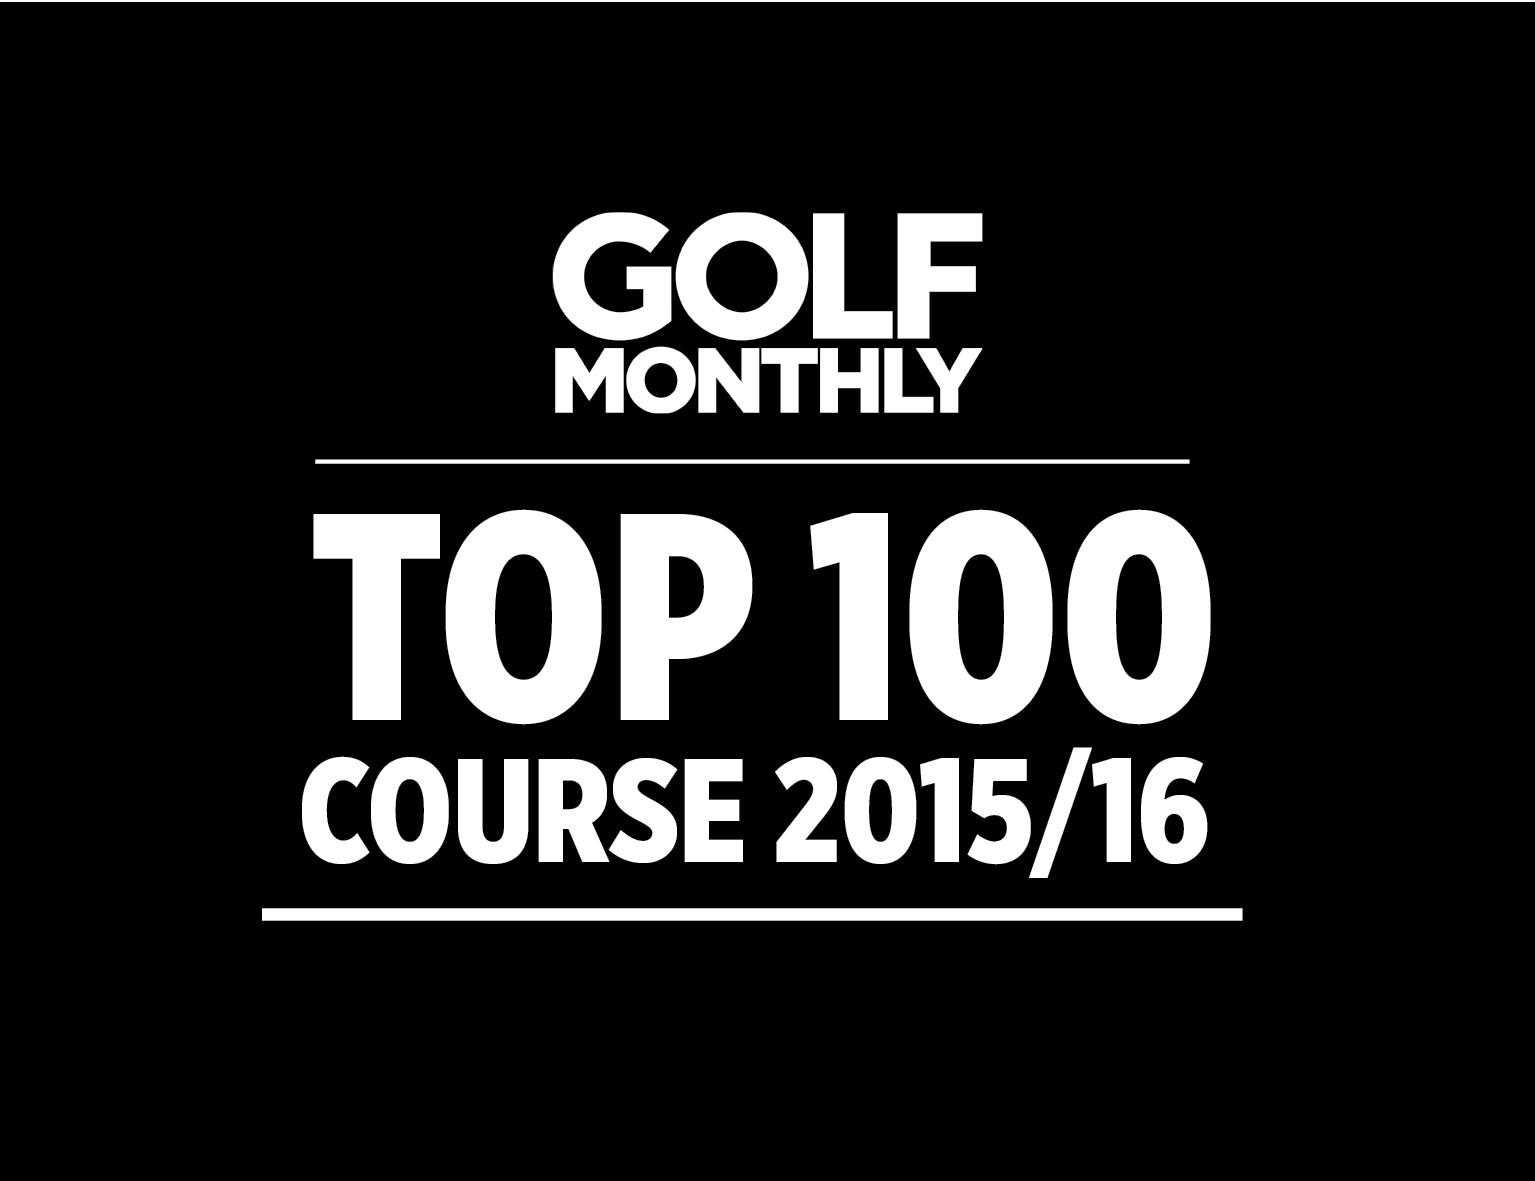 Golf Monthly Top 100